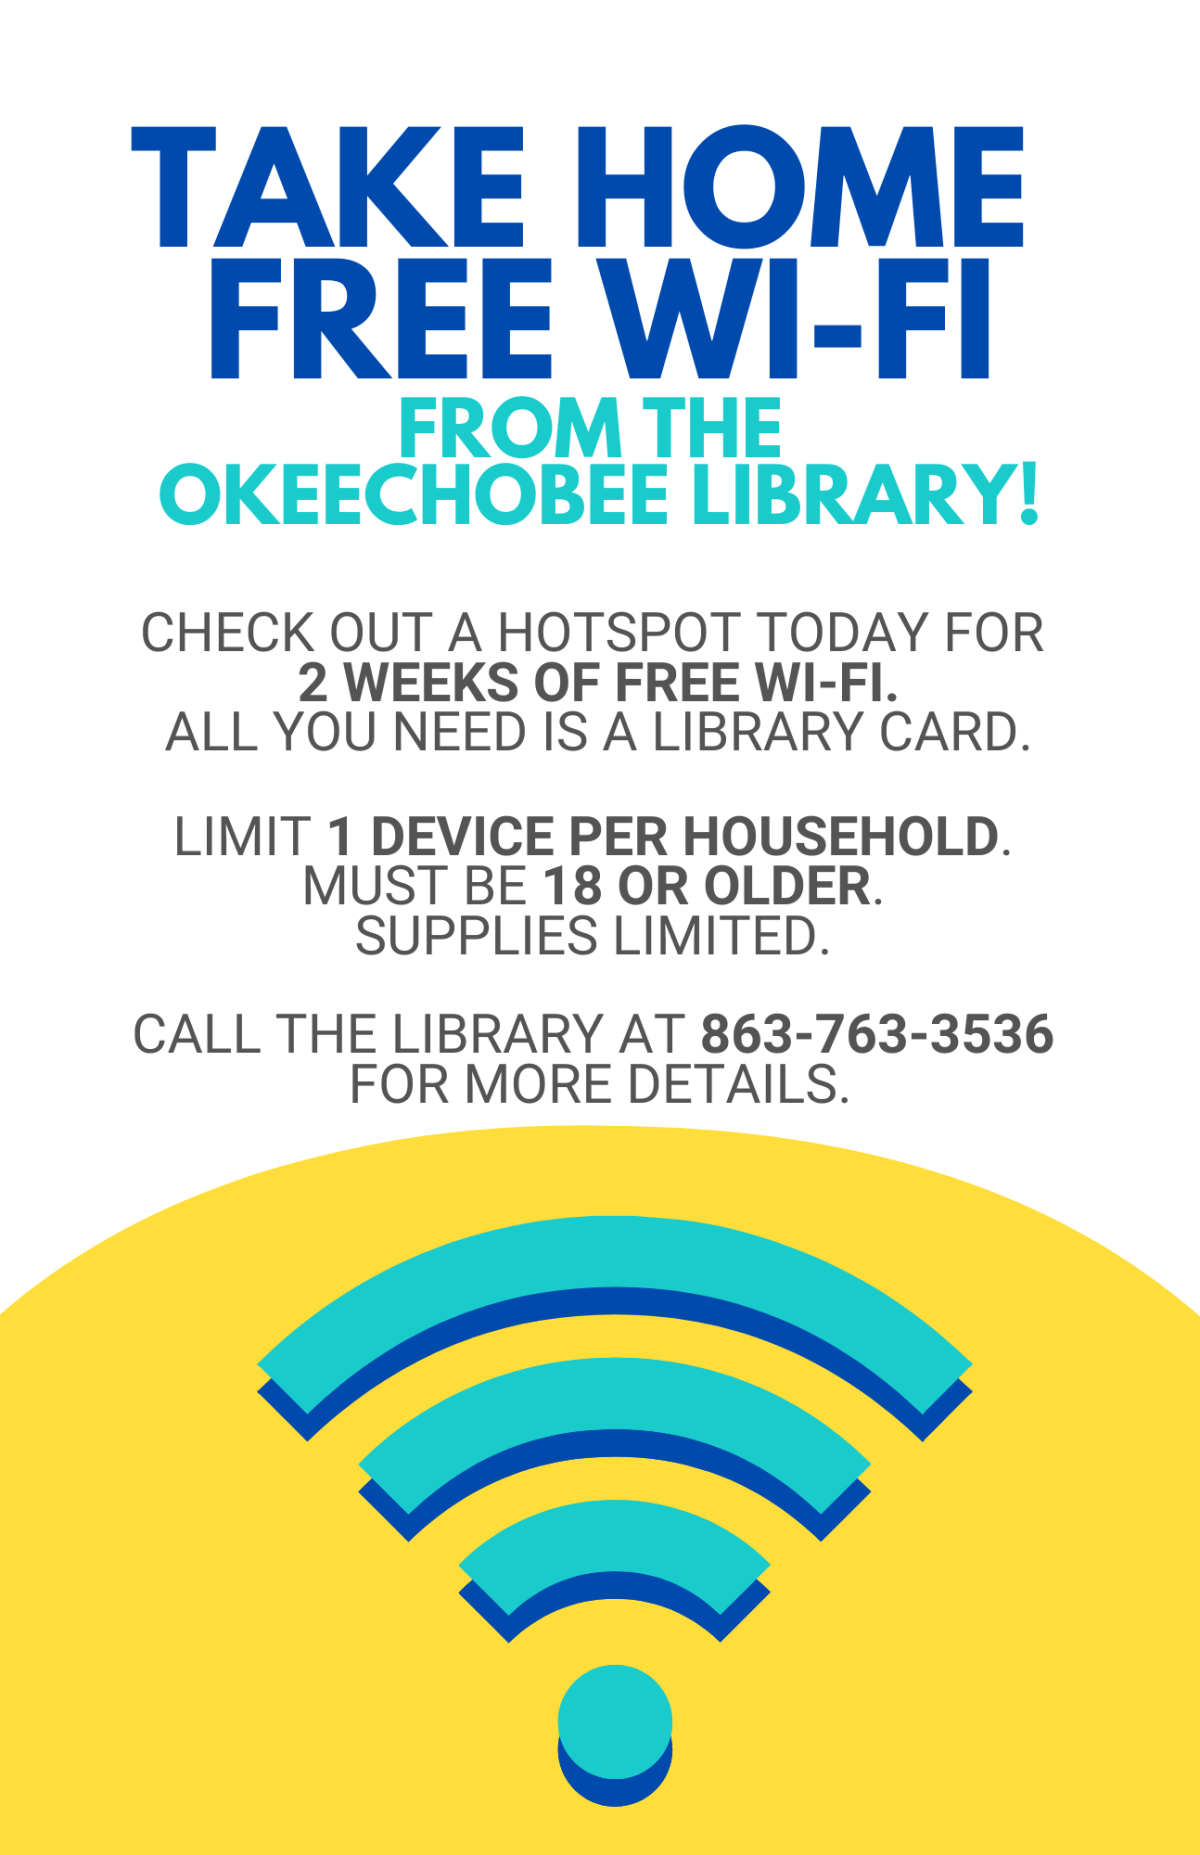 Take Home free Wi-Fi from the Okeechobee Library! Check out a hotspot today for 2 weeks of free Wi-Fi. All you need is a library card. Limit 1 device per household. Must be 18 or older. Supplies limited. Call the Library at 863-763-3536 for more details.